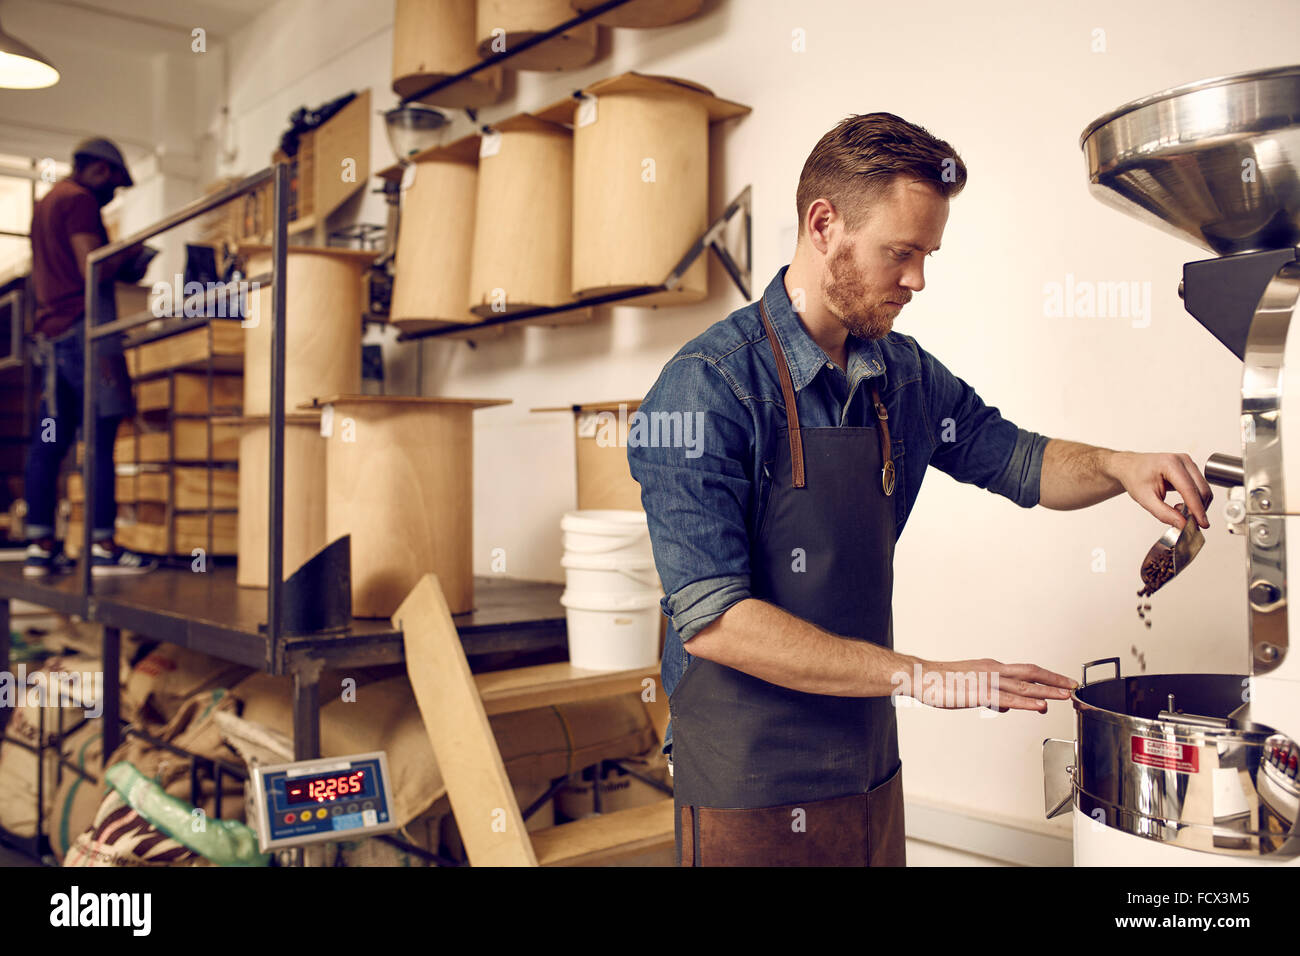 Professional coffee roaster operating a roasting machine in dist - Stock Image